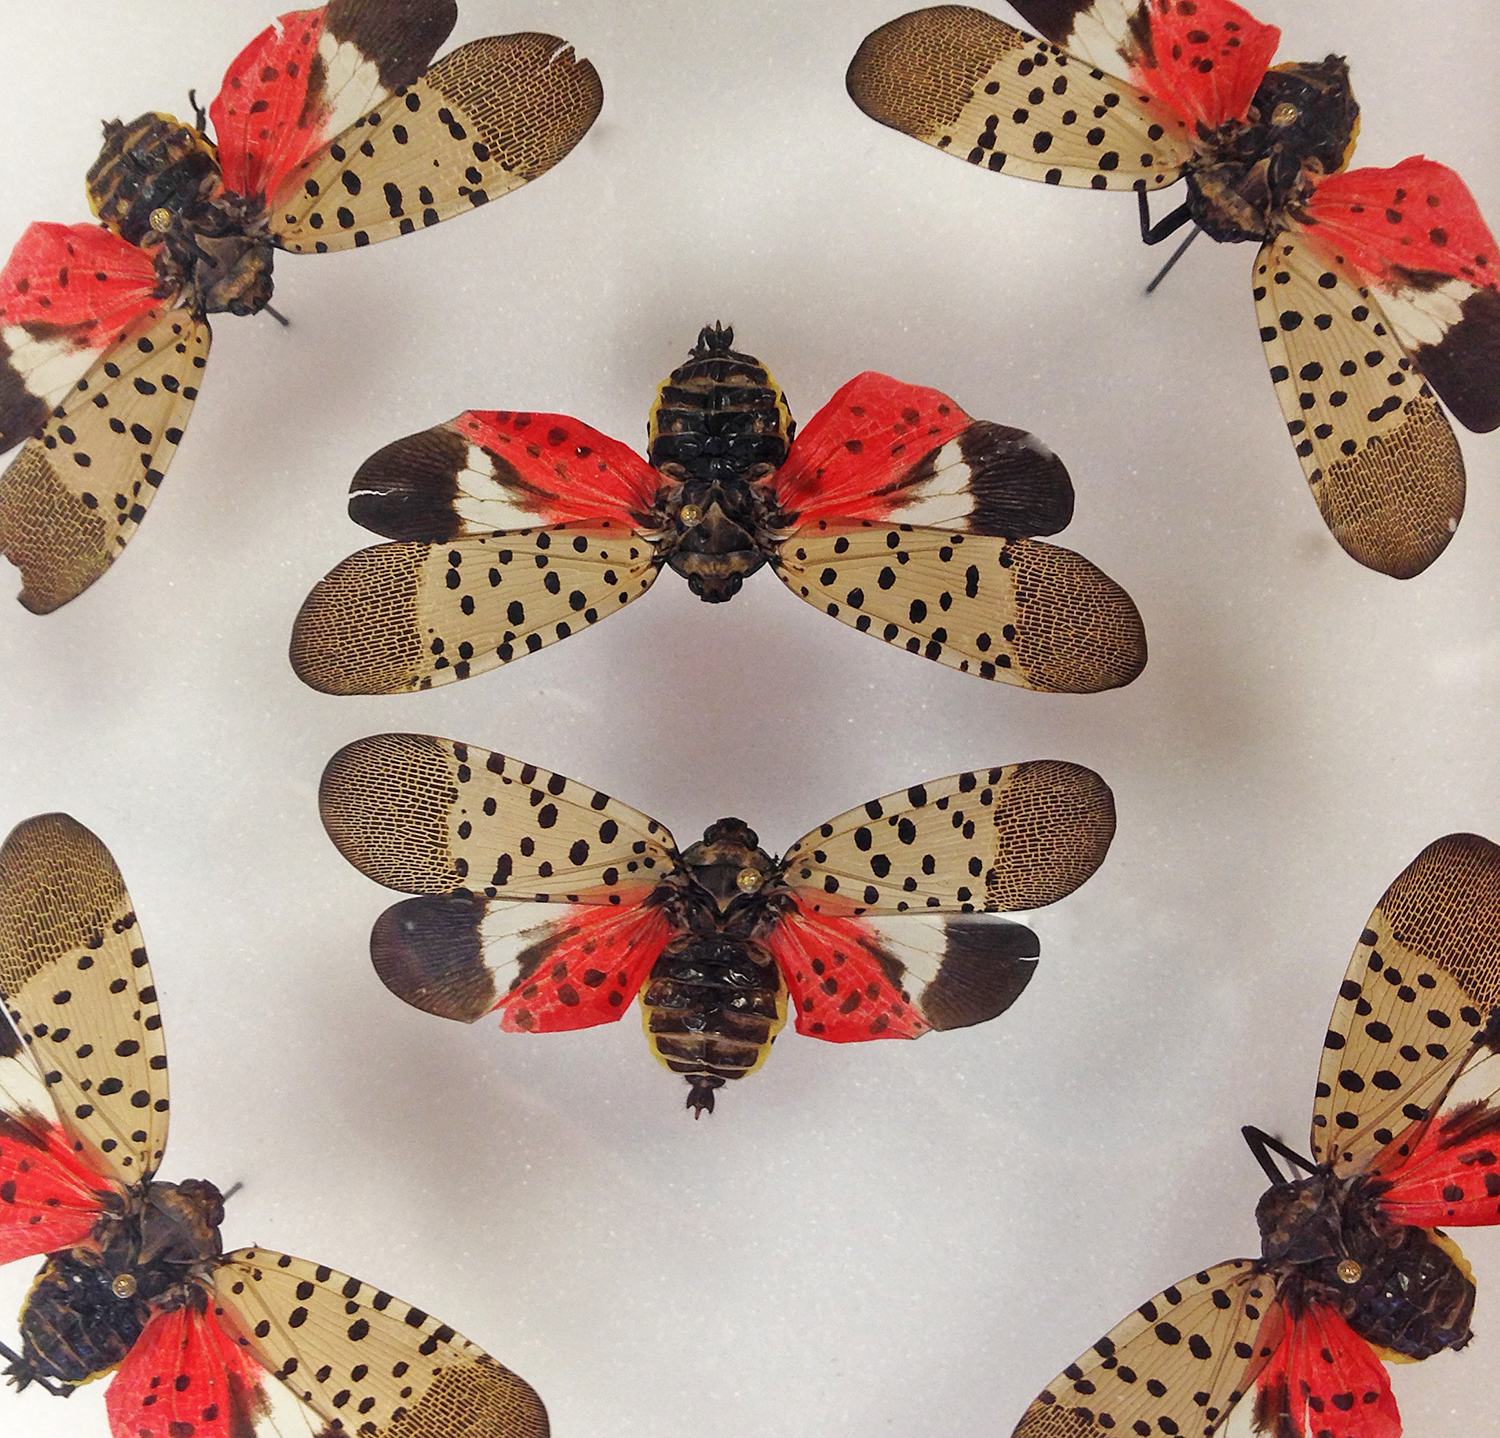 Spectacularly beautiful but nonetheless pests, spotted lanternflies have arrived in the United States.